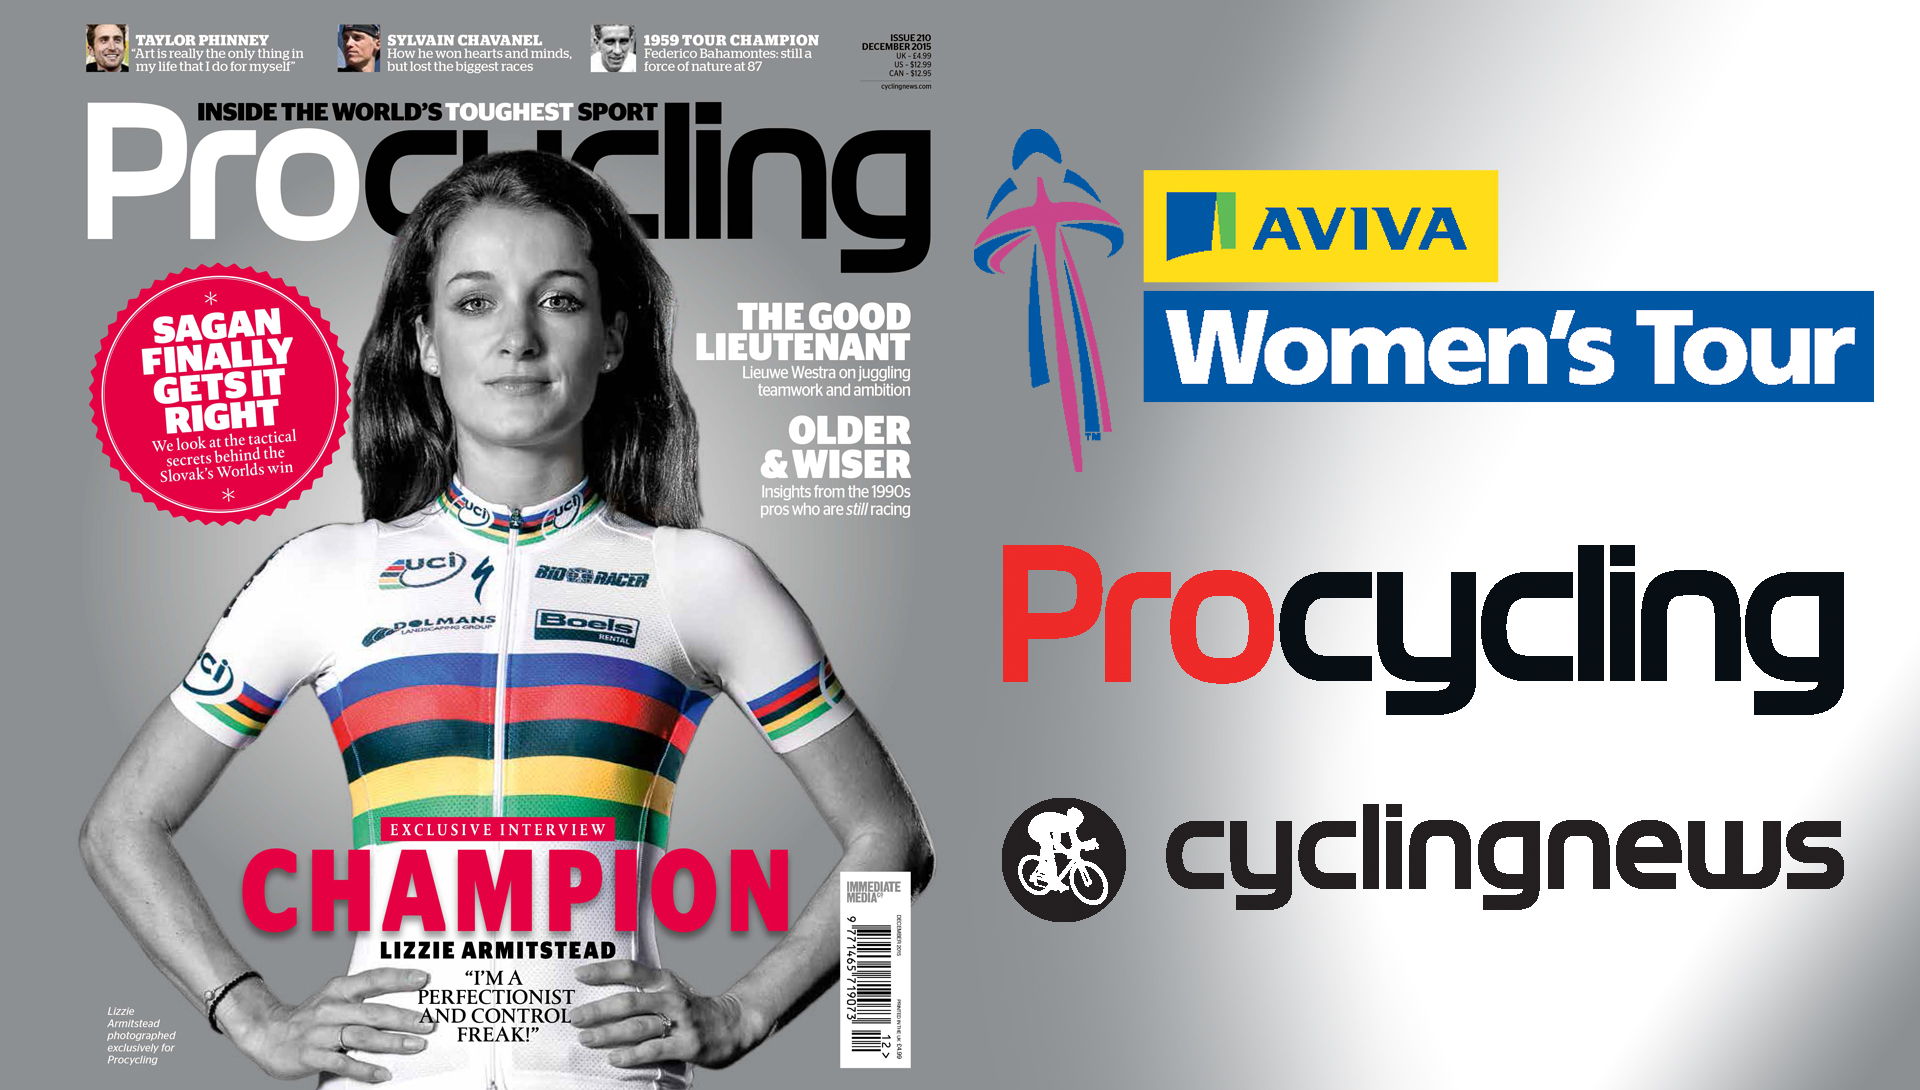 Cyclingnews.com and ProCycling become official partners of the Aviva Women's Tour